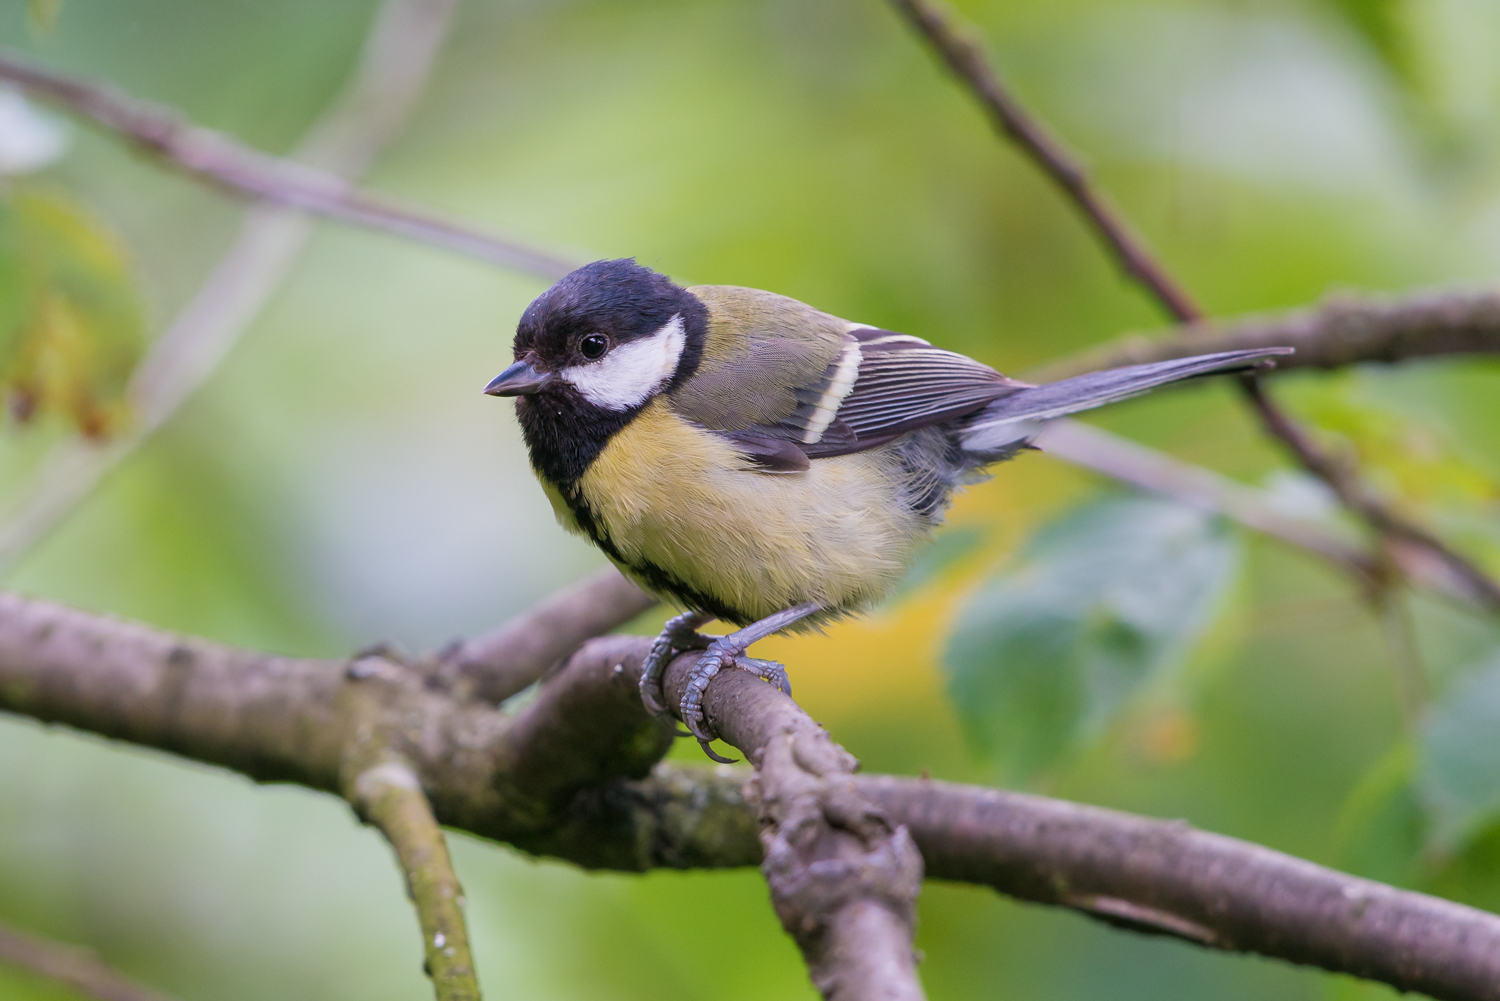 Great Tit, British birds, wildlife